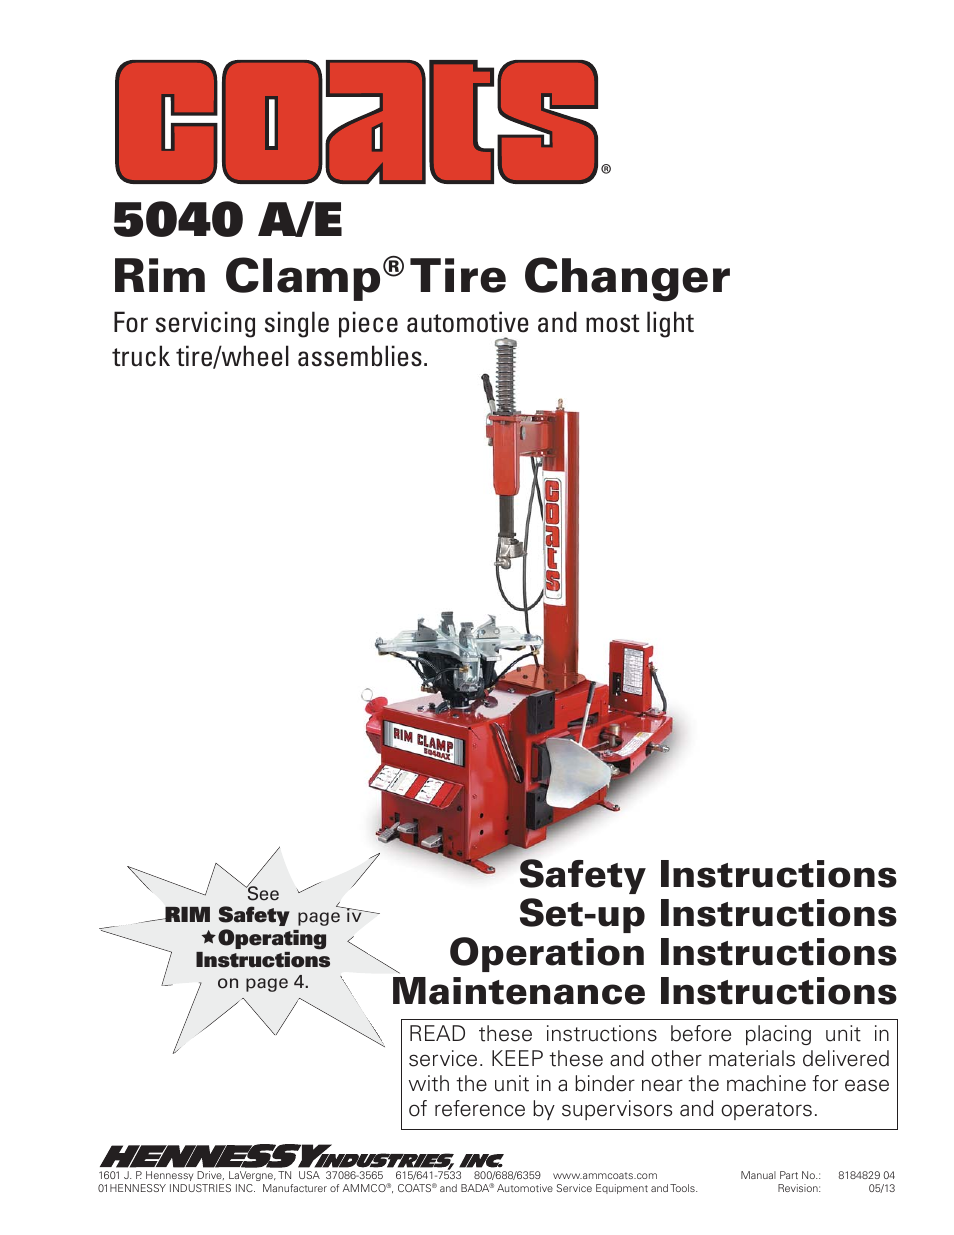 coats 5040 a e tire changer user manual 28 pages rh manualsdir com Old Manual Tire Changer Atlas Tire Changer Manual